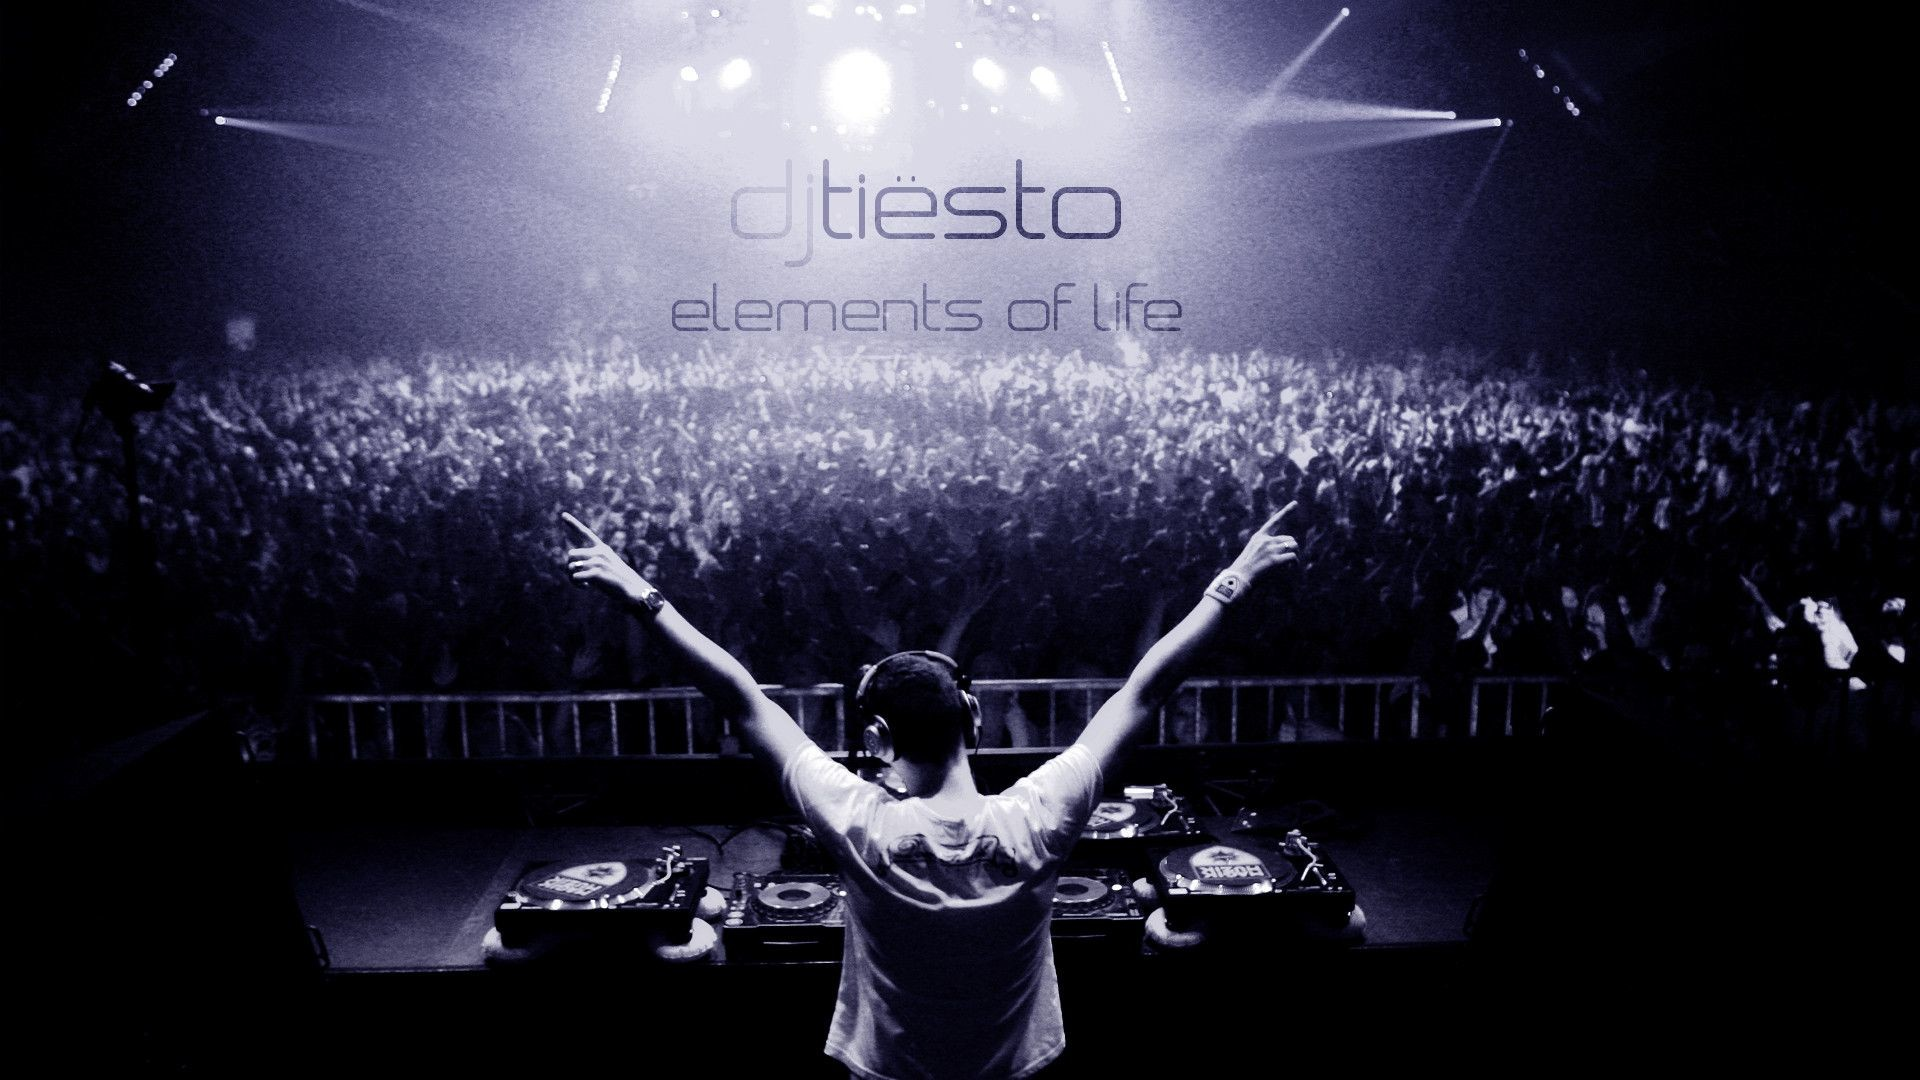 Tiesto Wallpapers | HD Wallpapers Base